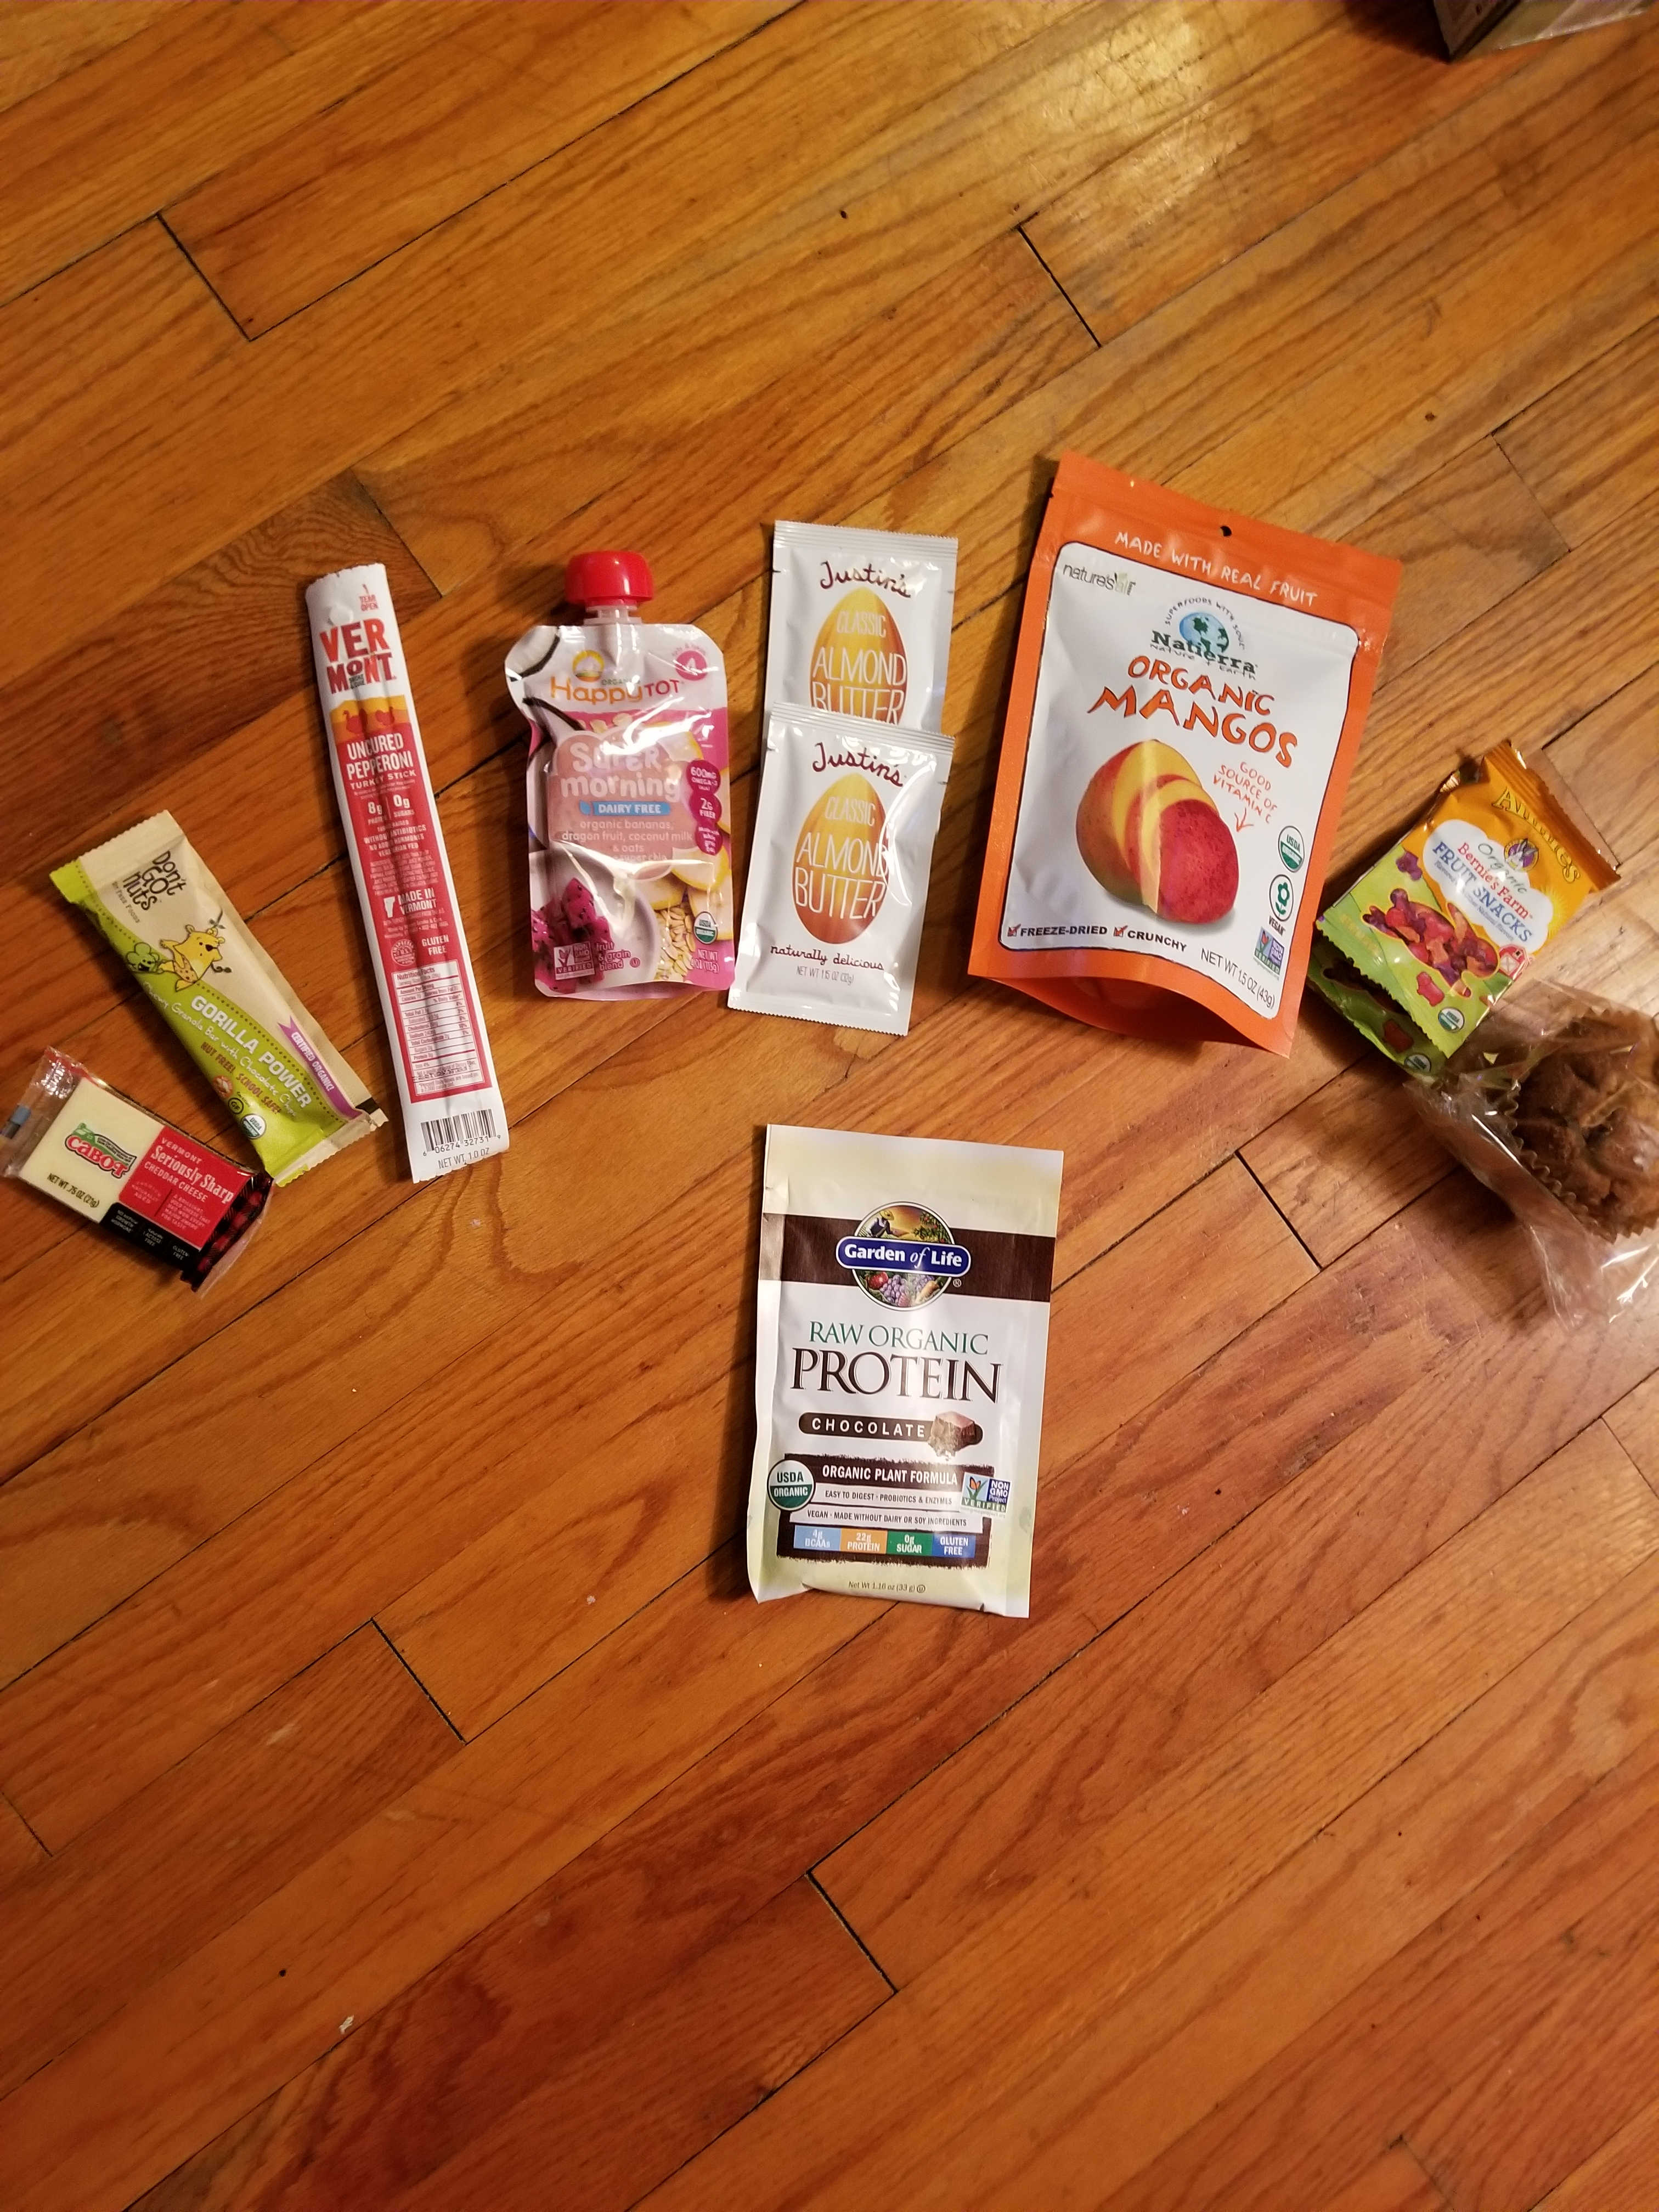 Favorite trail snacks for hiking and backpacking